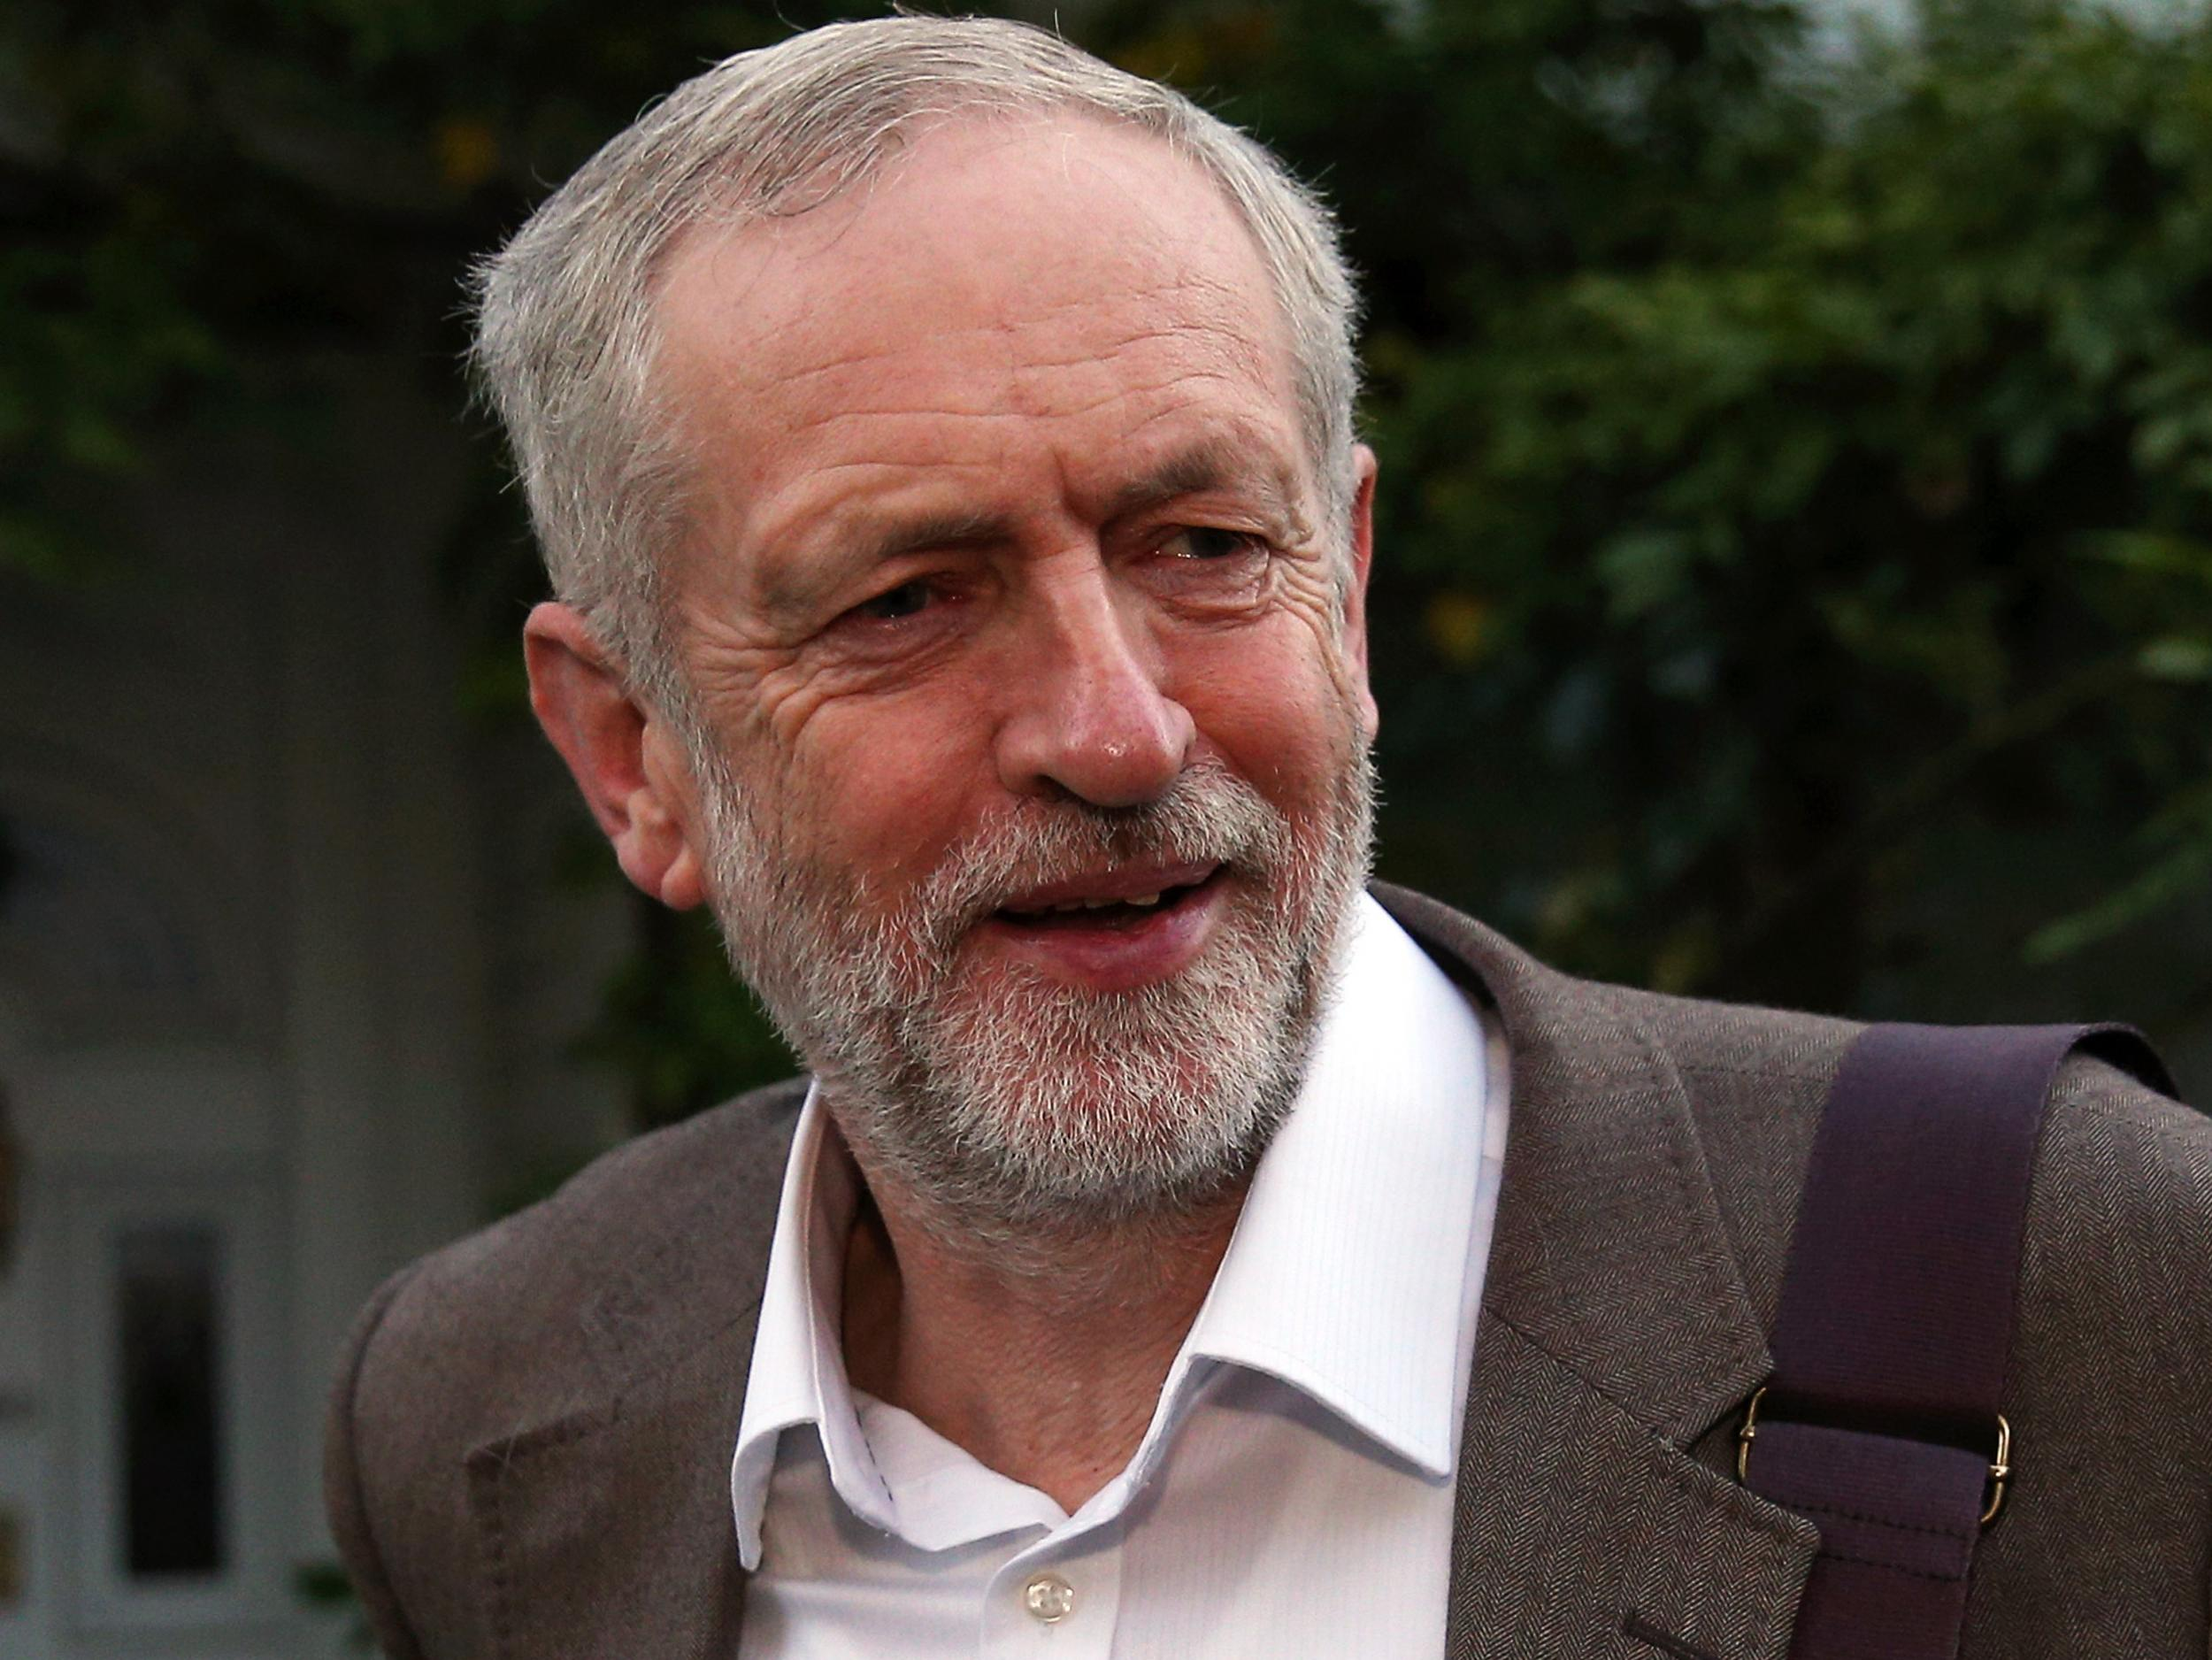 There s only one way to find out if corbyn is fit to be prime minister did he kneel in front of her majesty the independent